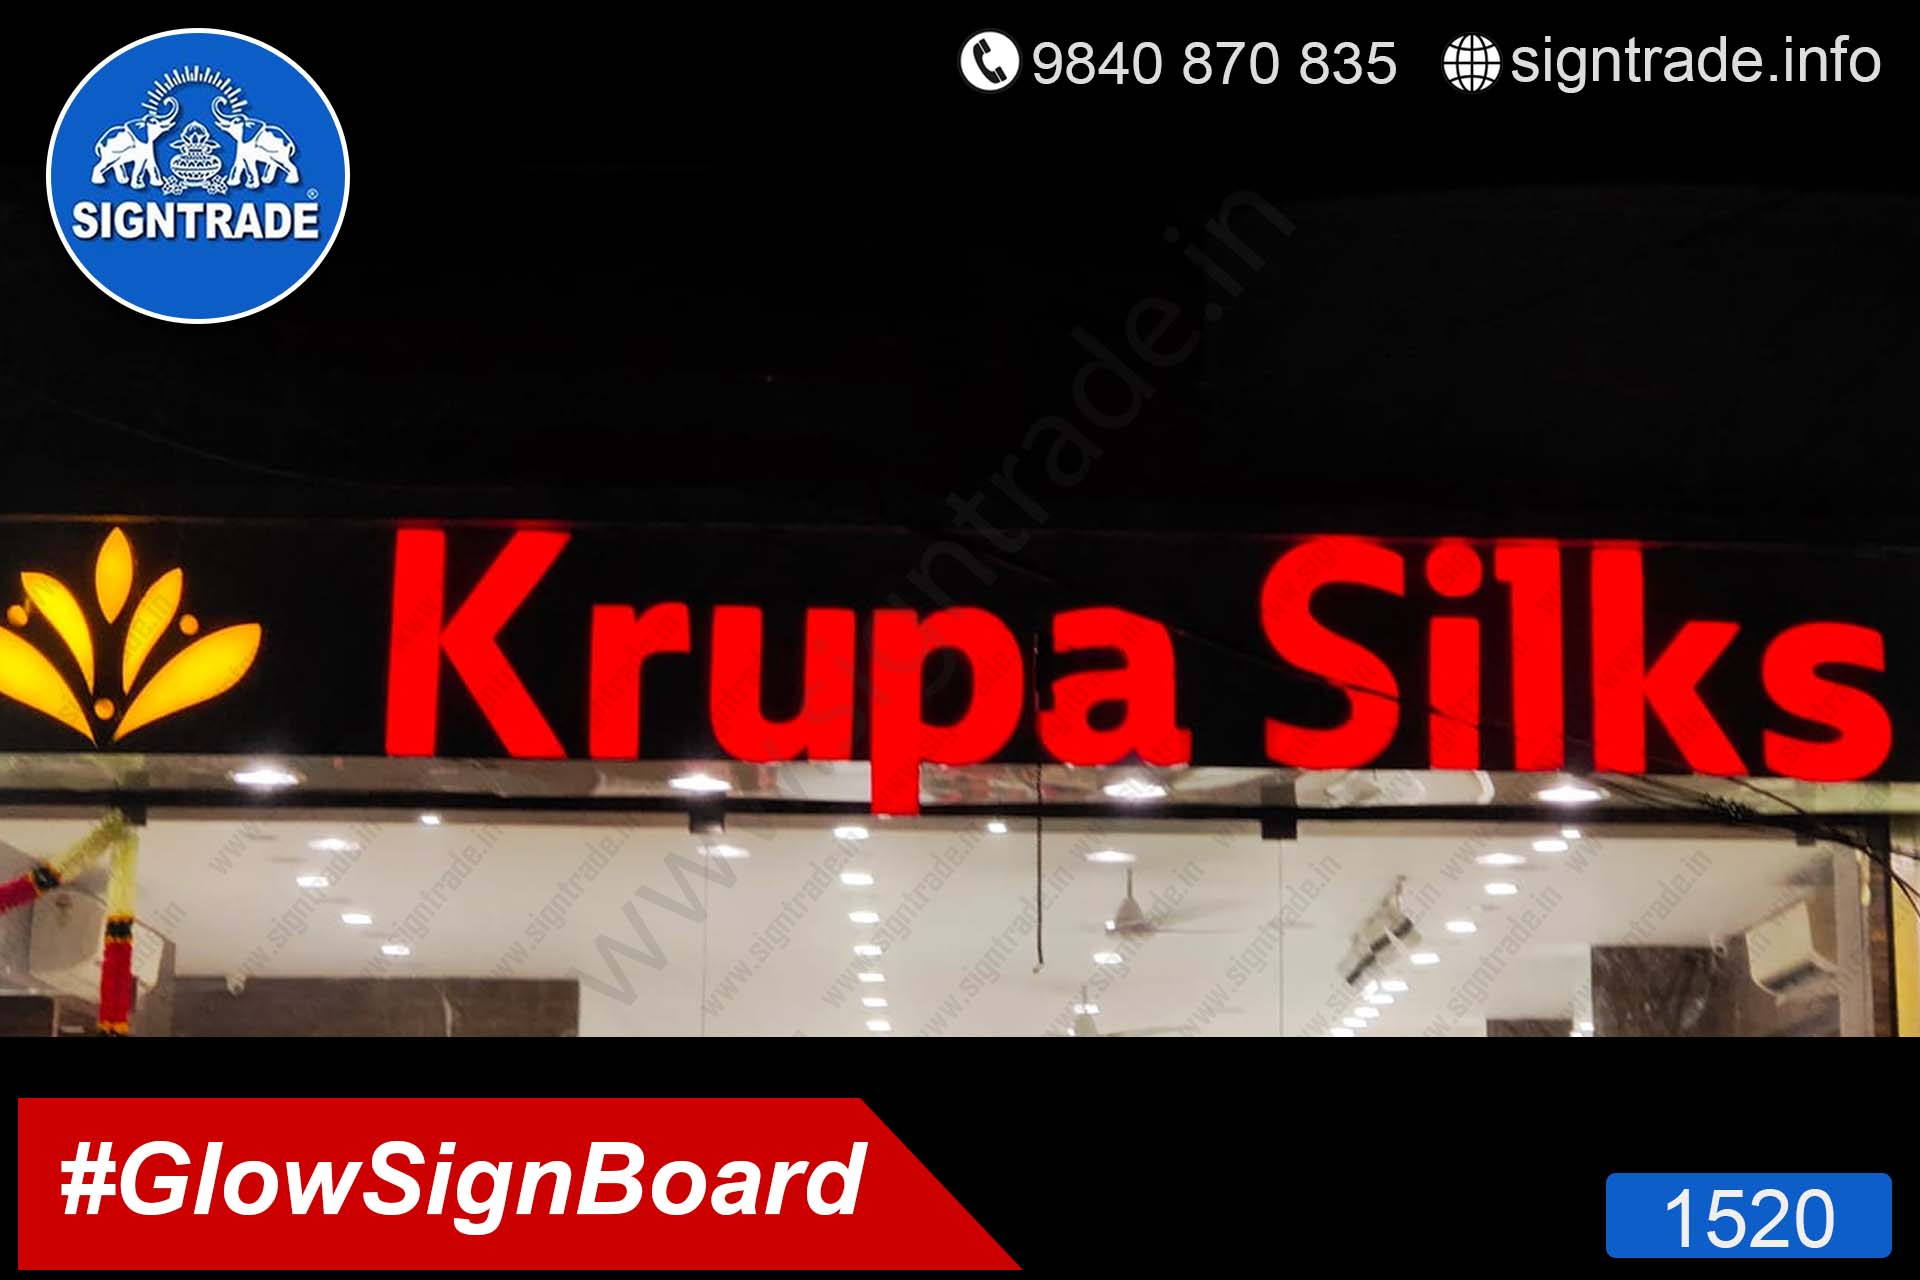 Krupa Silks - SIGNTRADE - Acrylic, LED Sign Board Manufacturers in Chennai